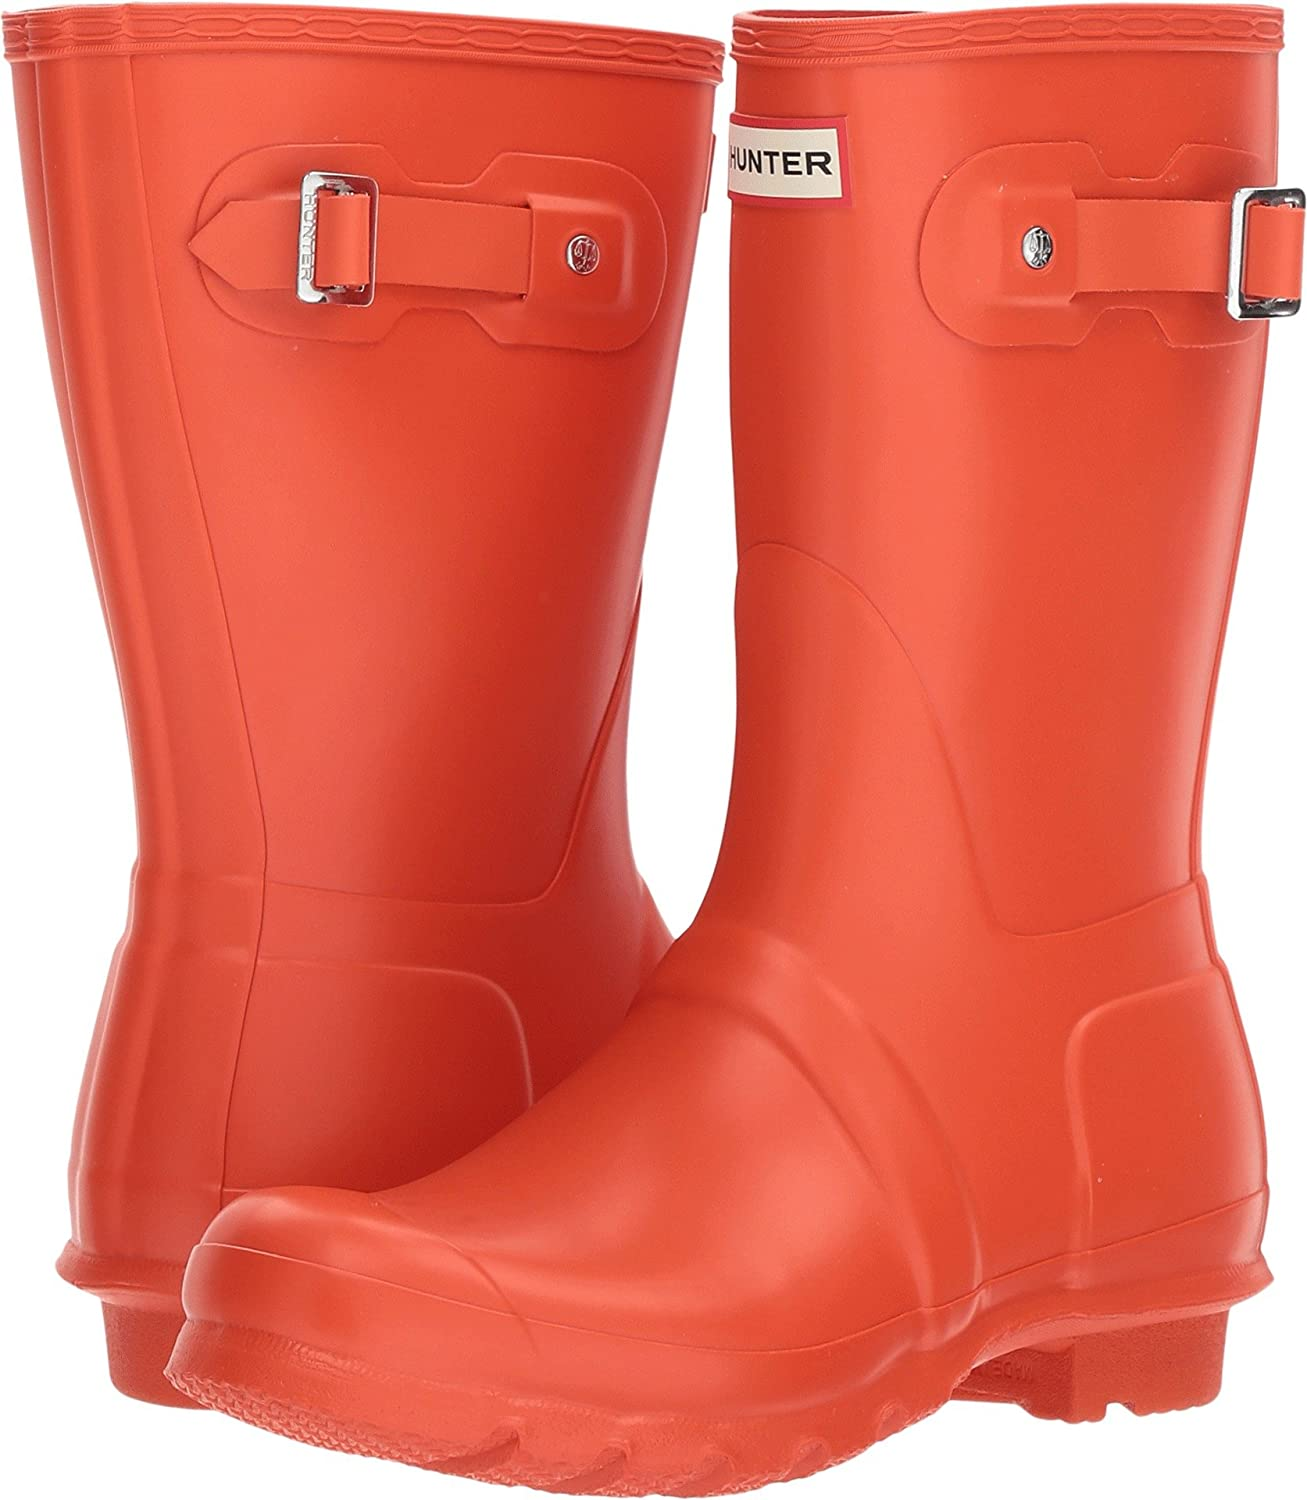 Hunter Women's Original Short Rain Boot B076MBFFQ2 10 B(M) US|Orange